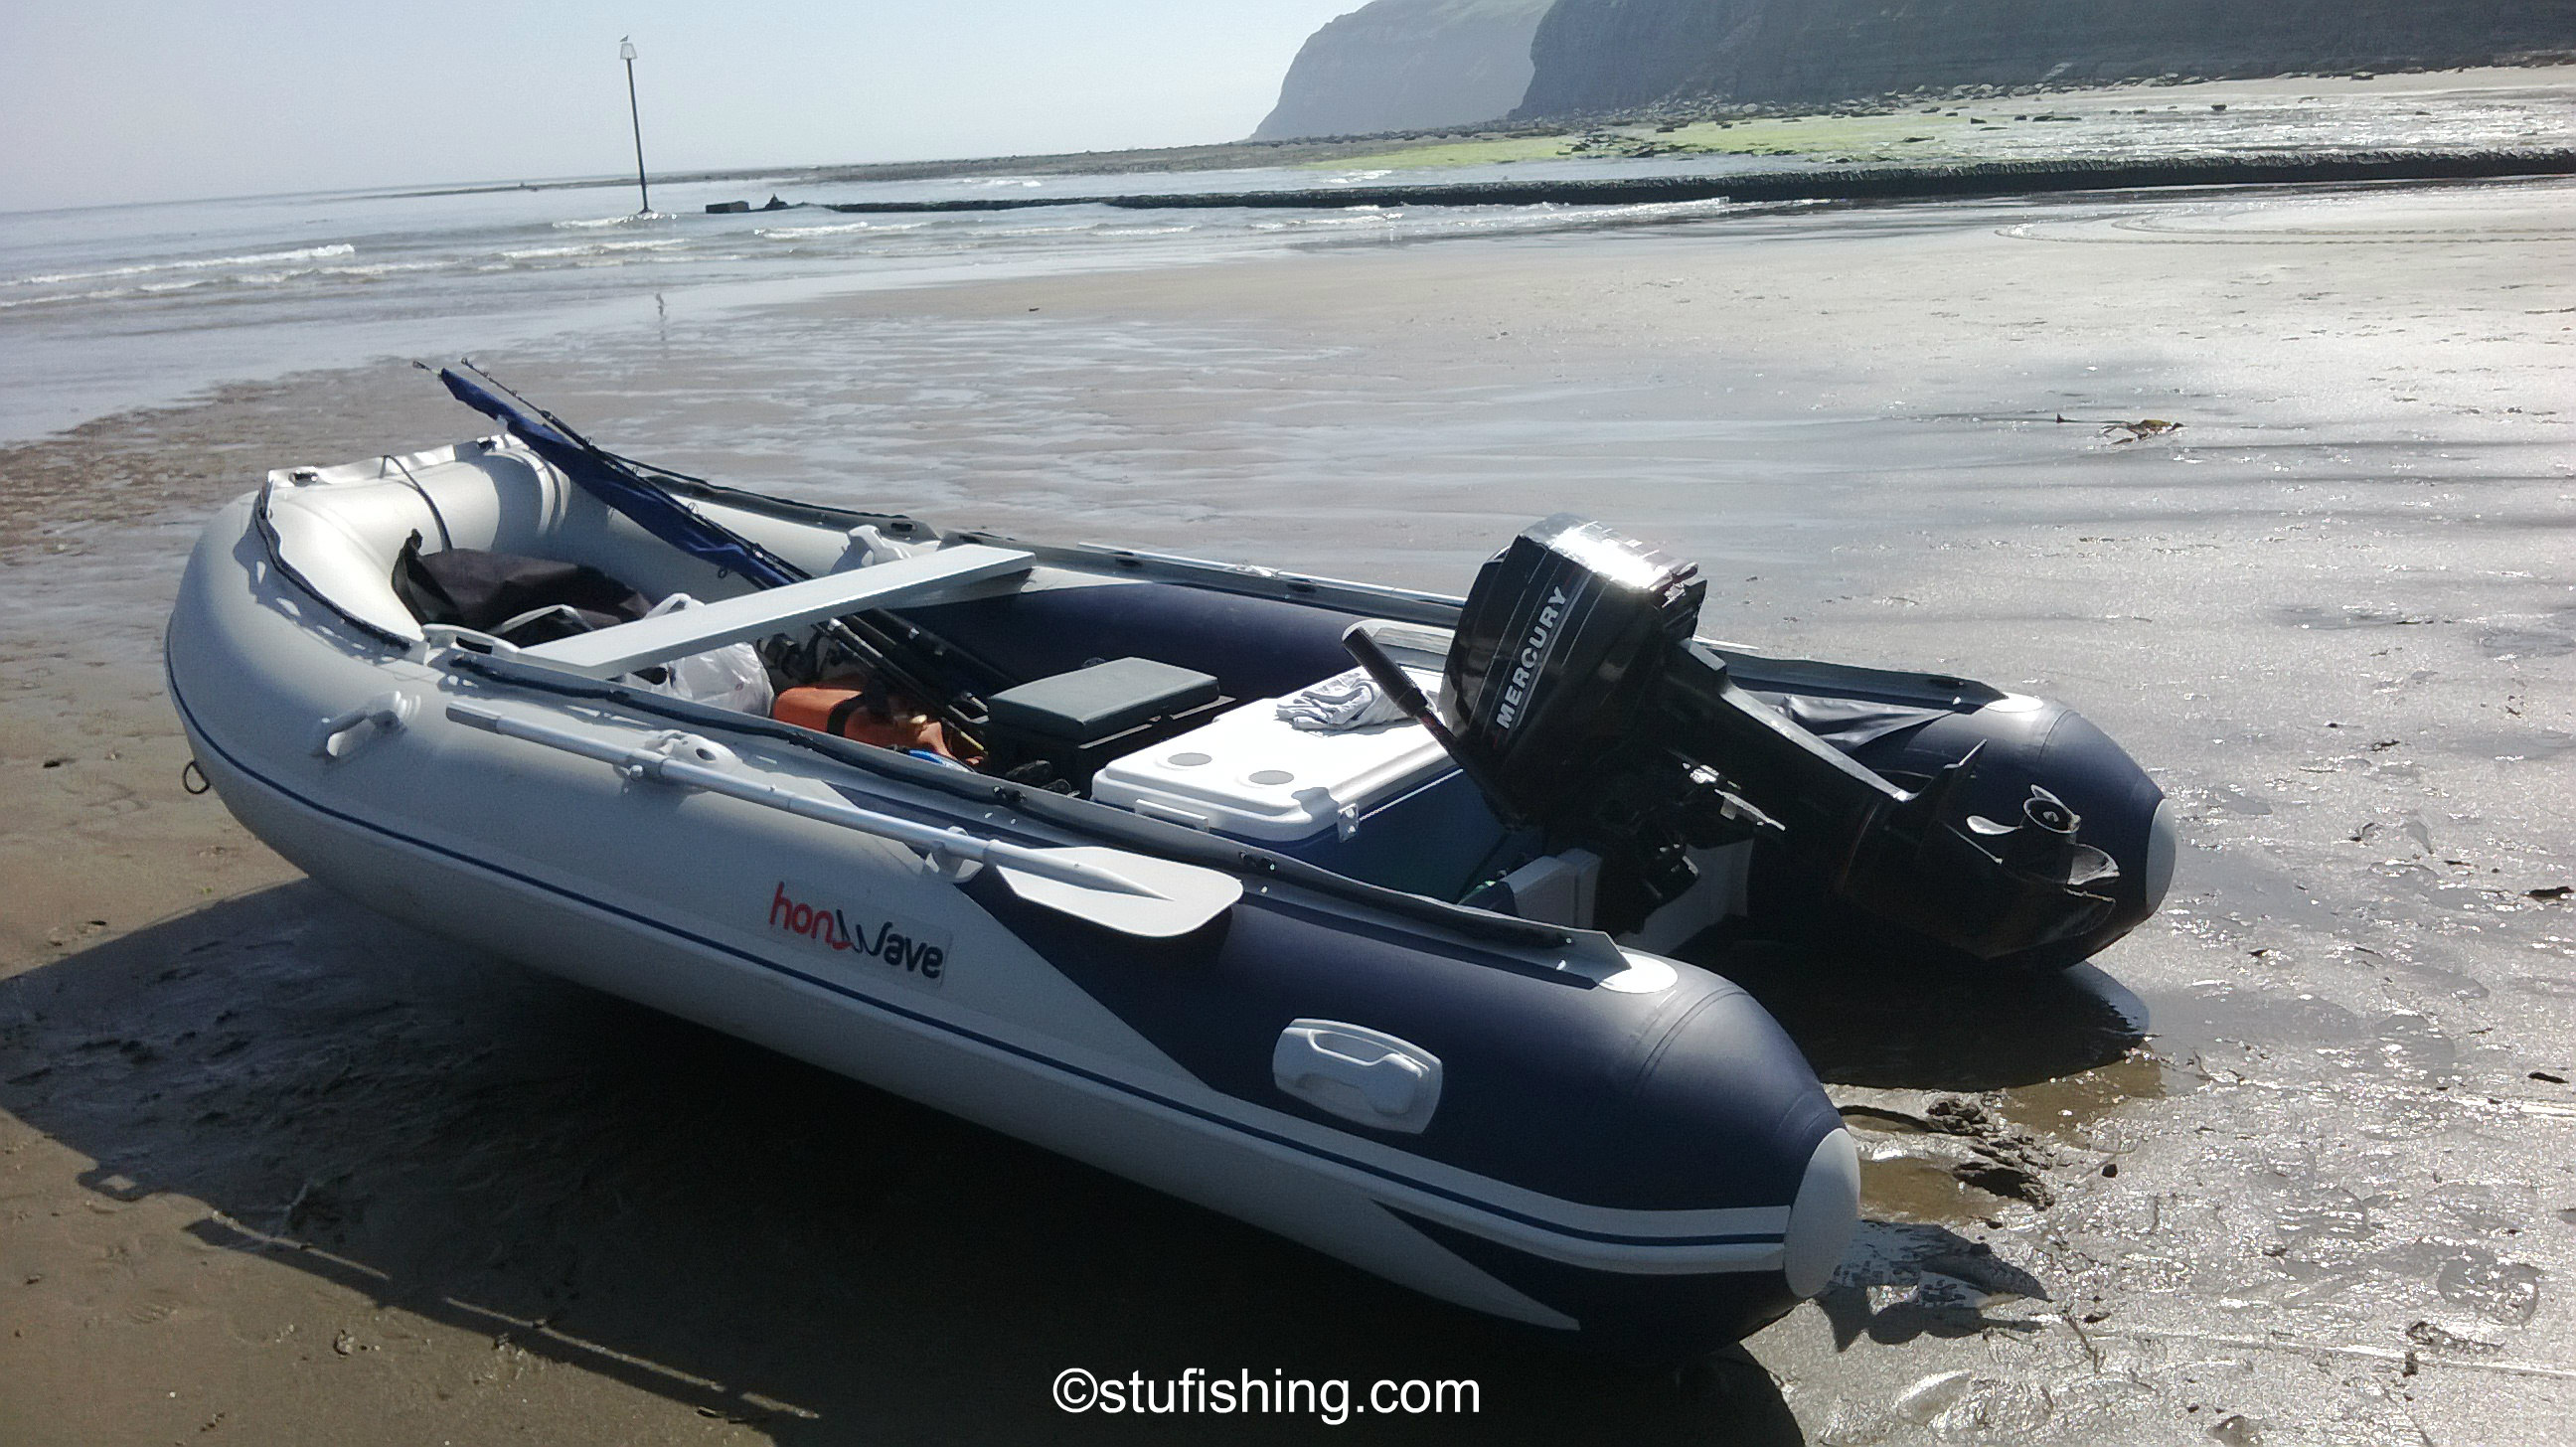 The Honda Honwave T40-AE Inflatable Boat